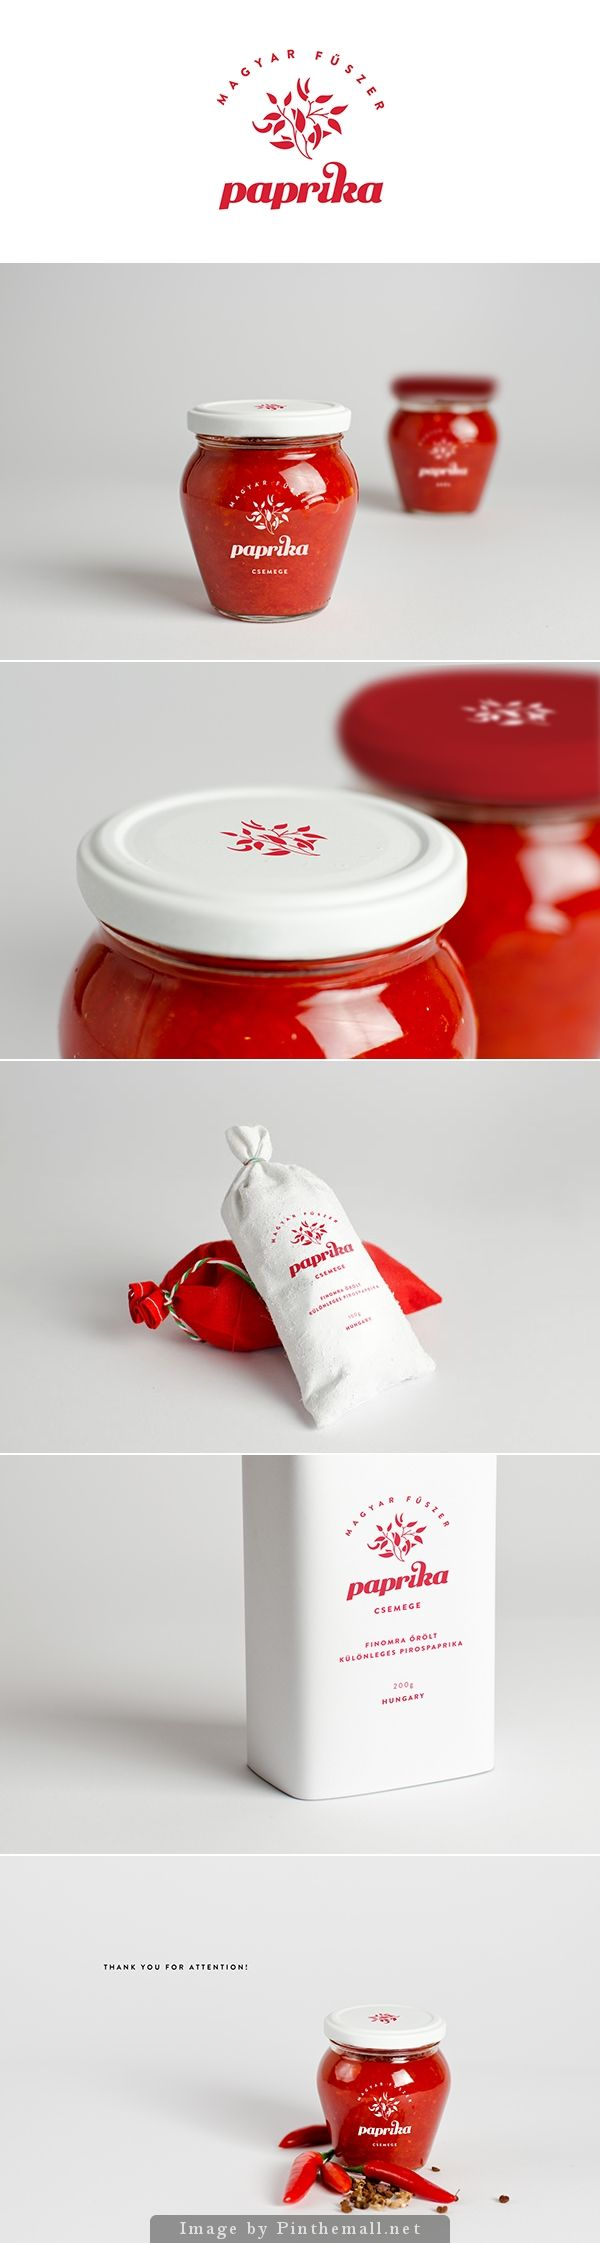 Paprika colorful #packaging PD Top #2014 team pin by a number of pinners.